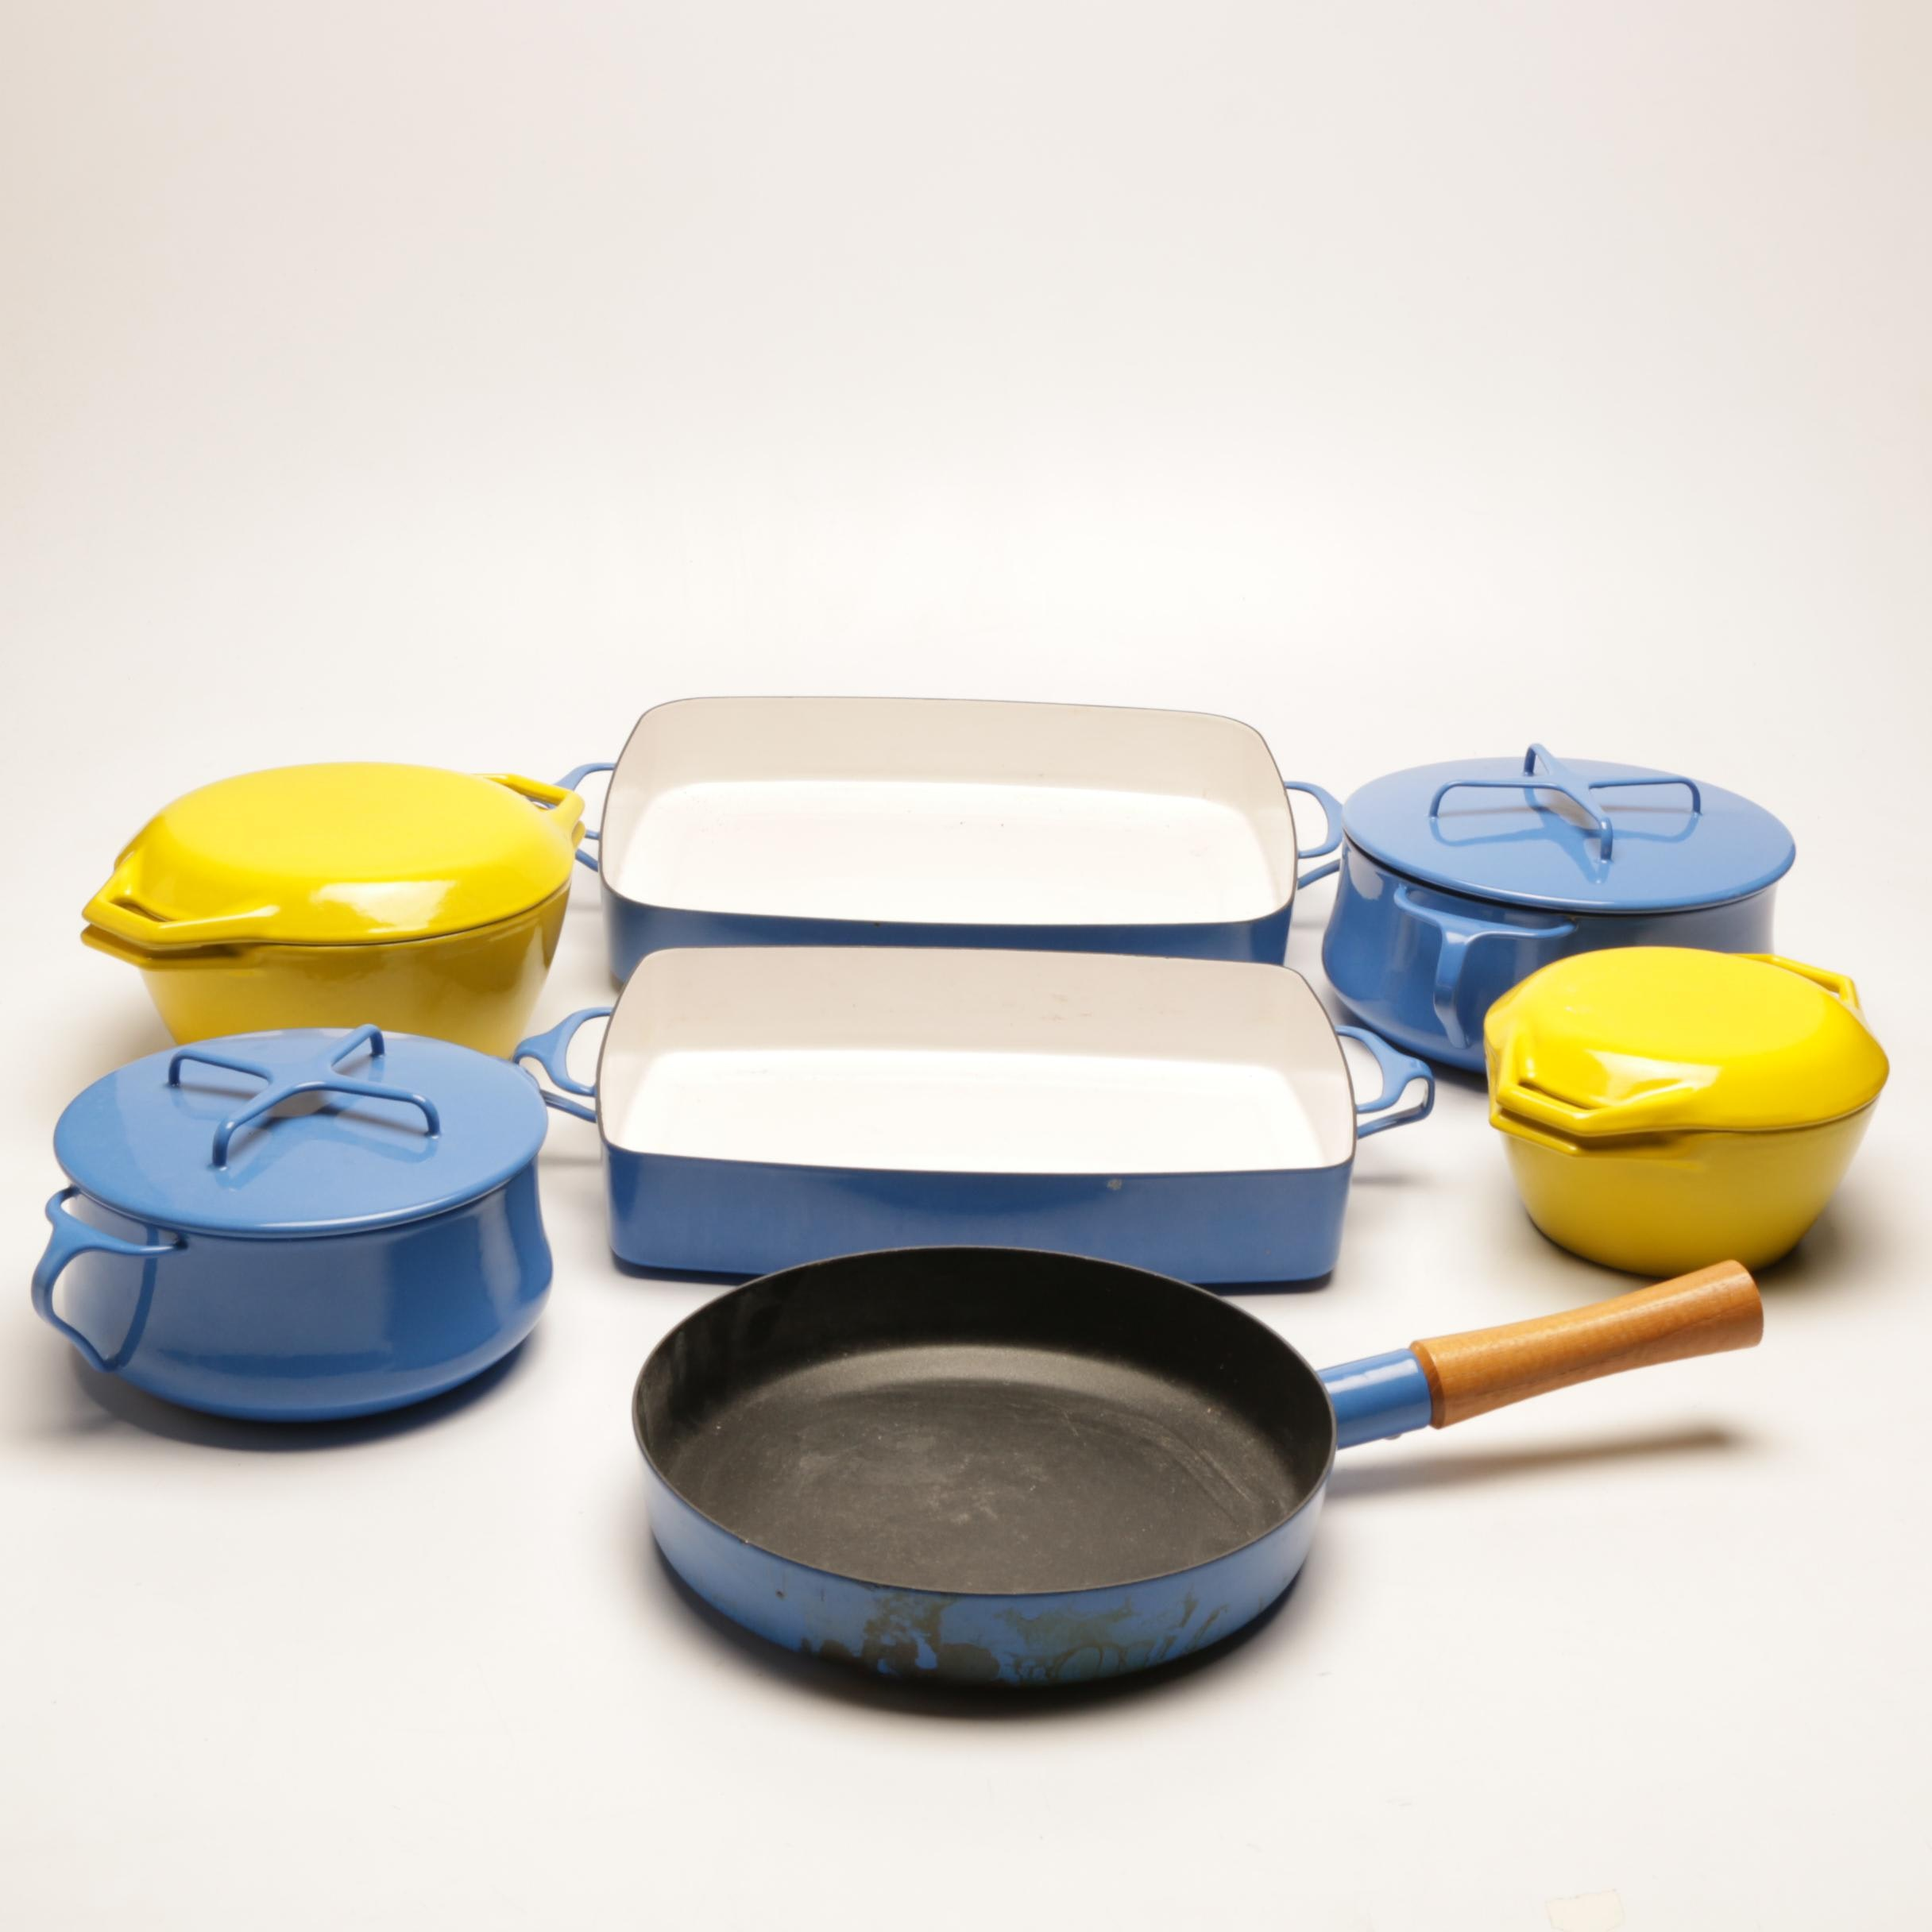 """Dansk """"Kobenstyle"""" and Copco Enamel Cookware in Yellow and Blue"""